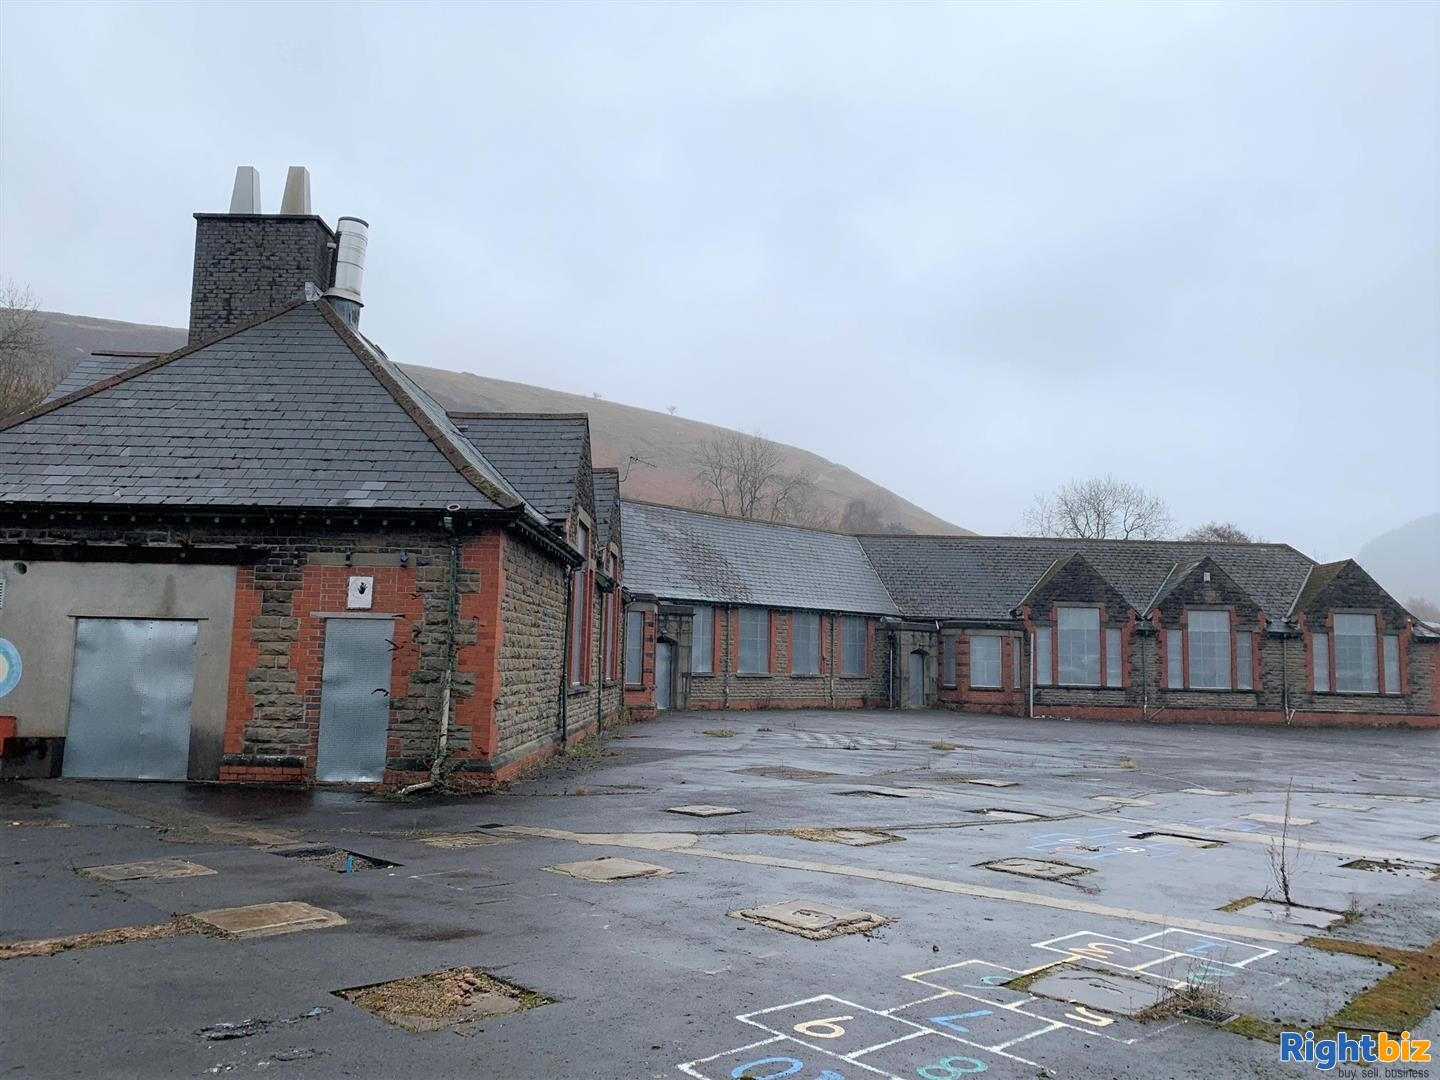 FORMER JUNIOR SCHOOL (CLASS D1 PP) ON A SITE OF AROUND 0.75 ACRES WITH REDEVELOPMENT POTENTIAL - Image 2